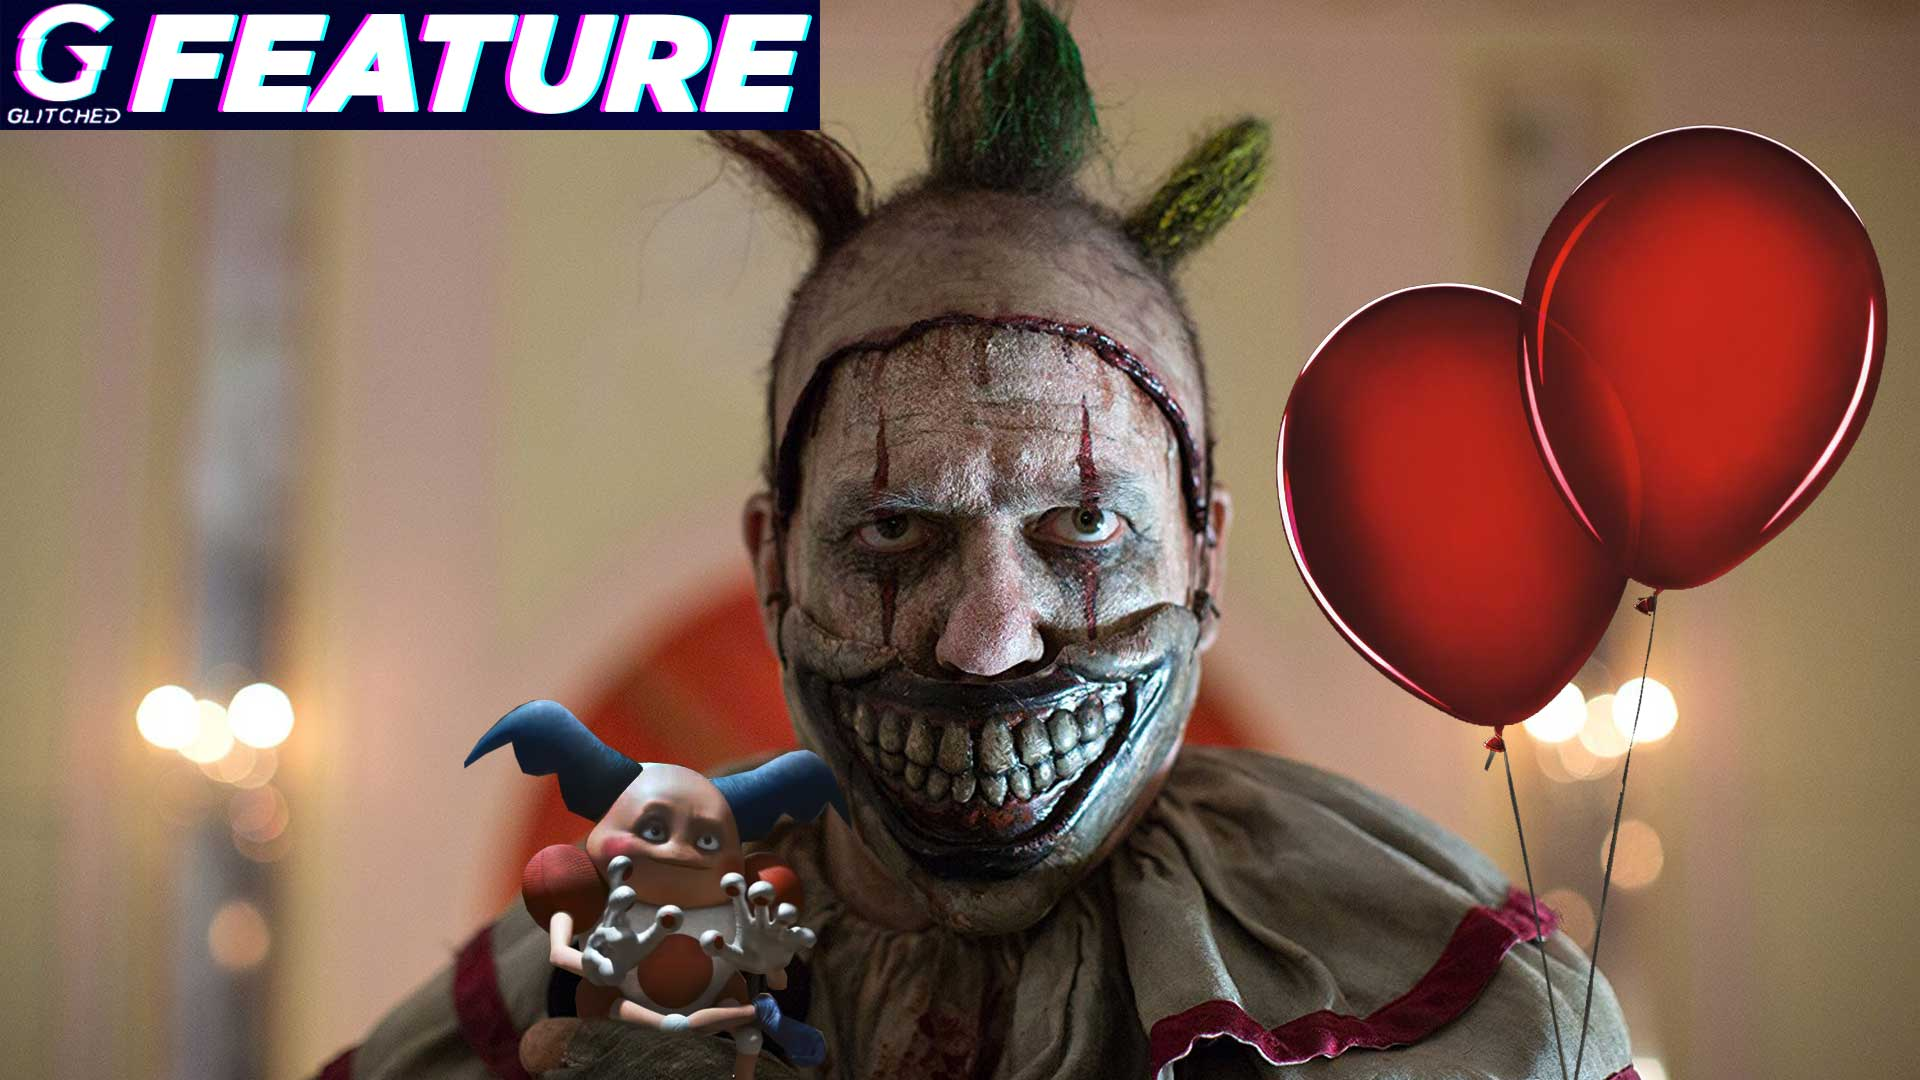 The Scariest Clowns in Movies, TV and Video Games